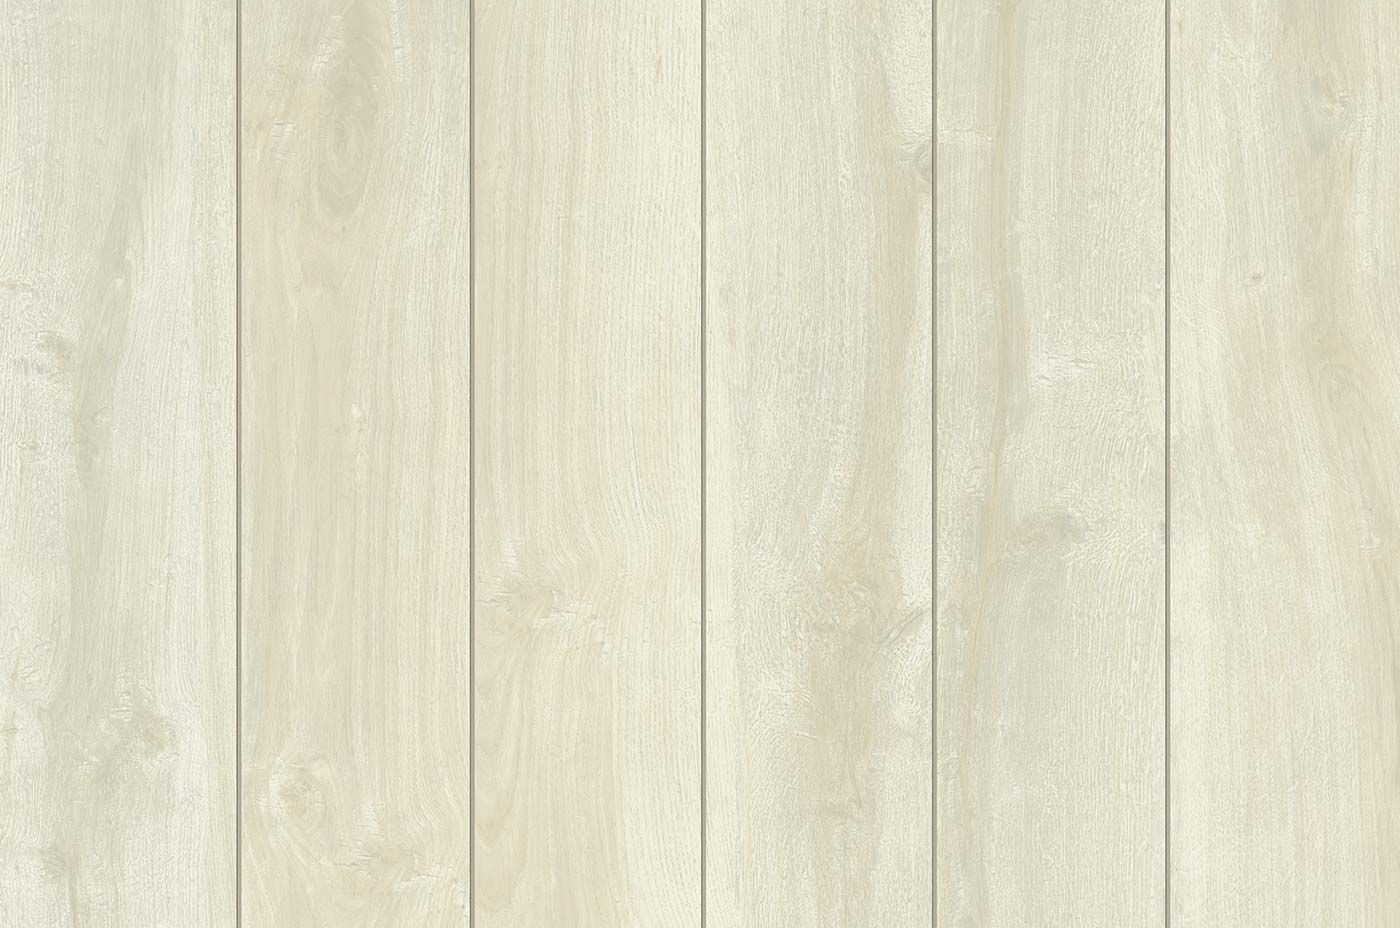 Florim Usa Urban Wood White Birch 6 X 36 Tile Flooring